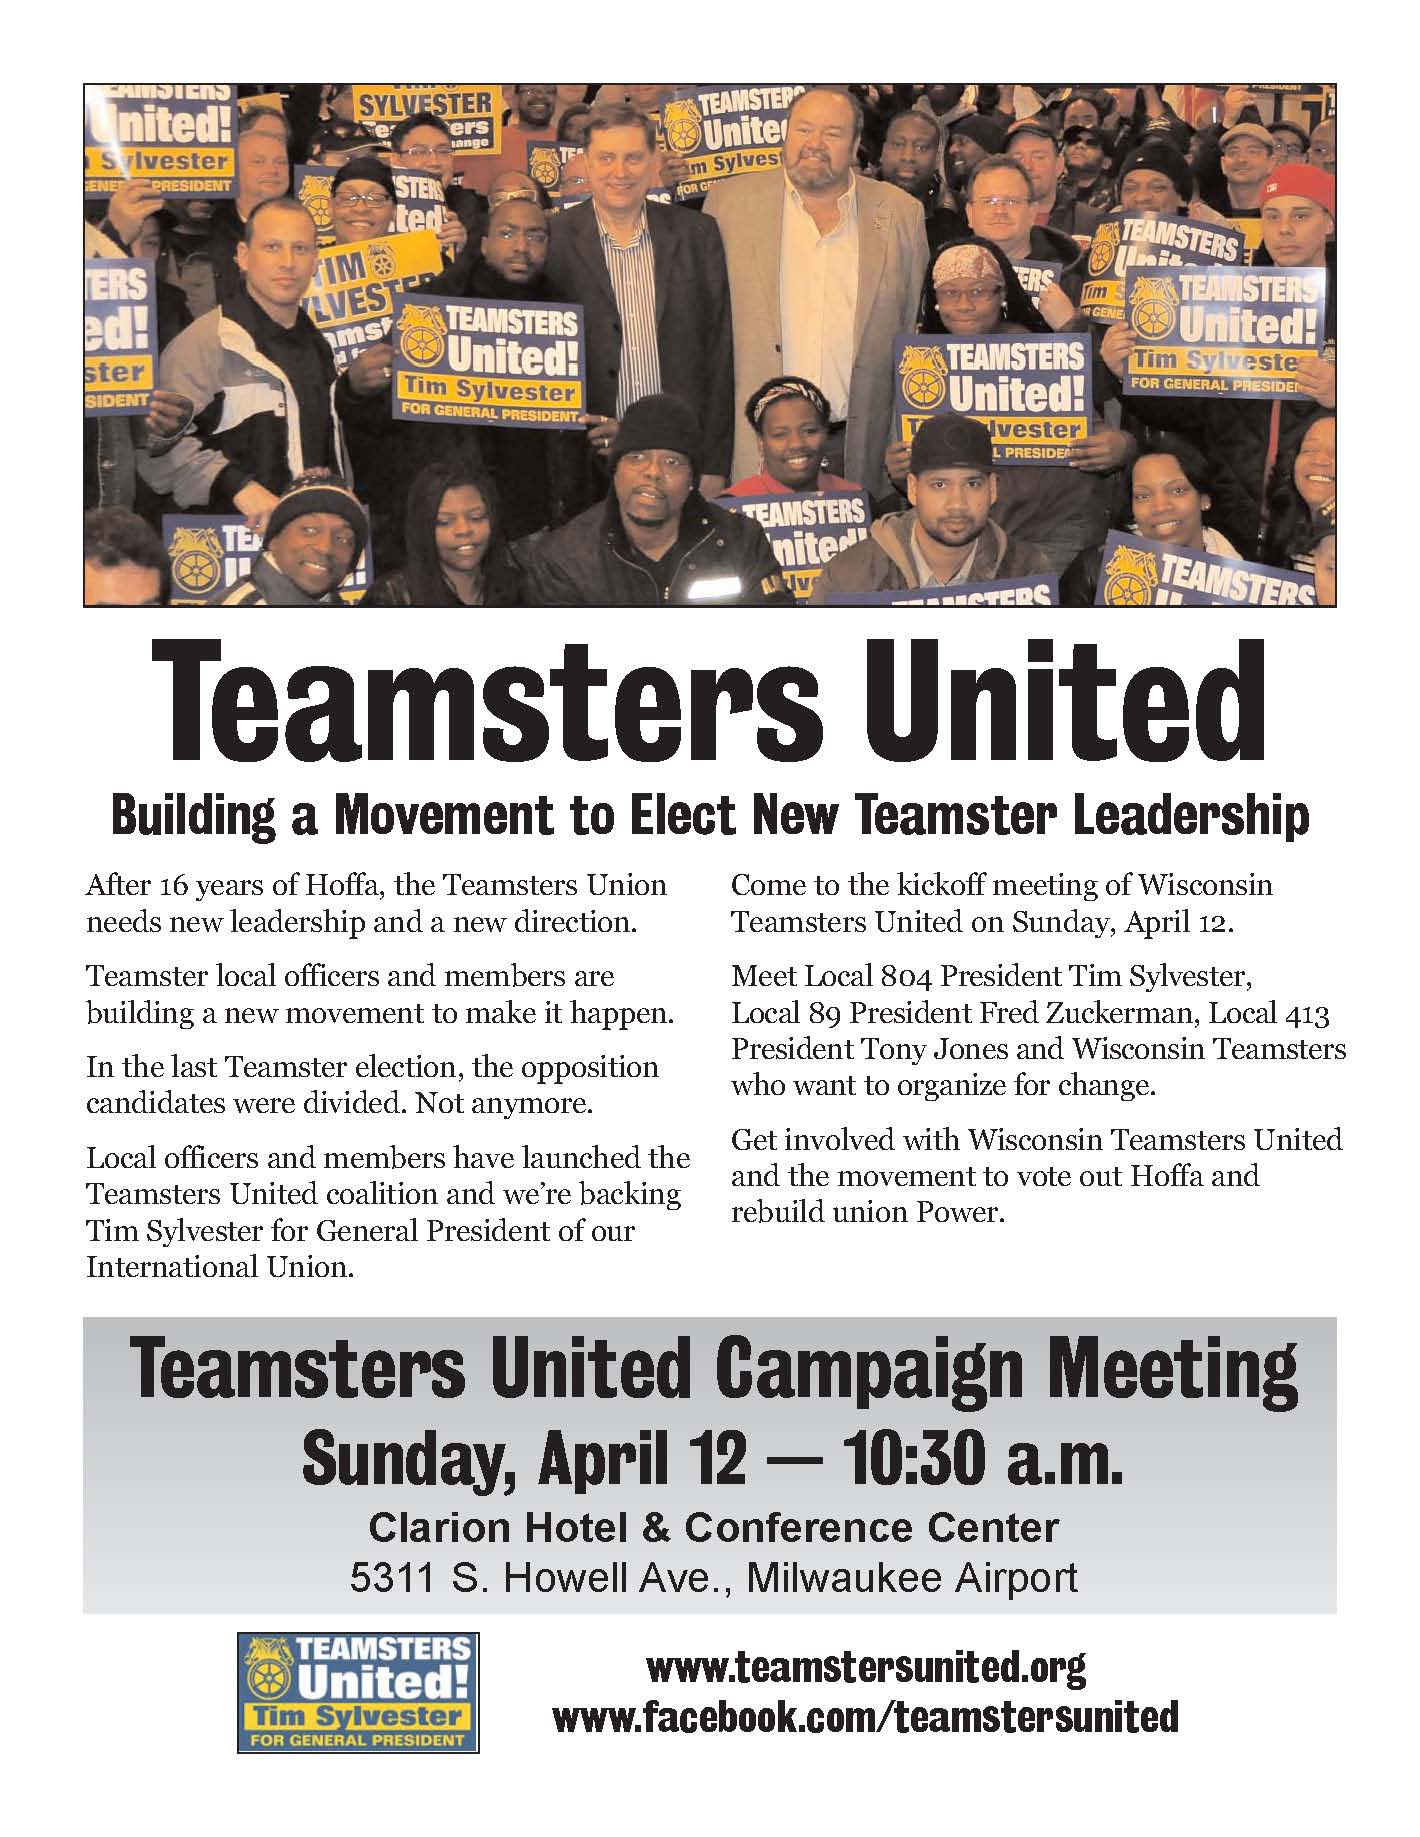 Teamsters_United_-_Milwaukee.jpg